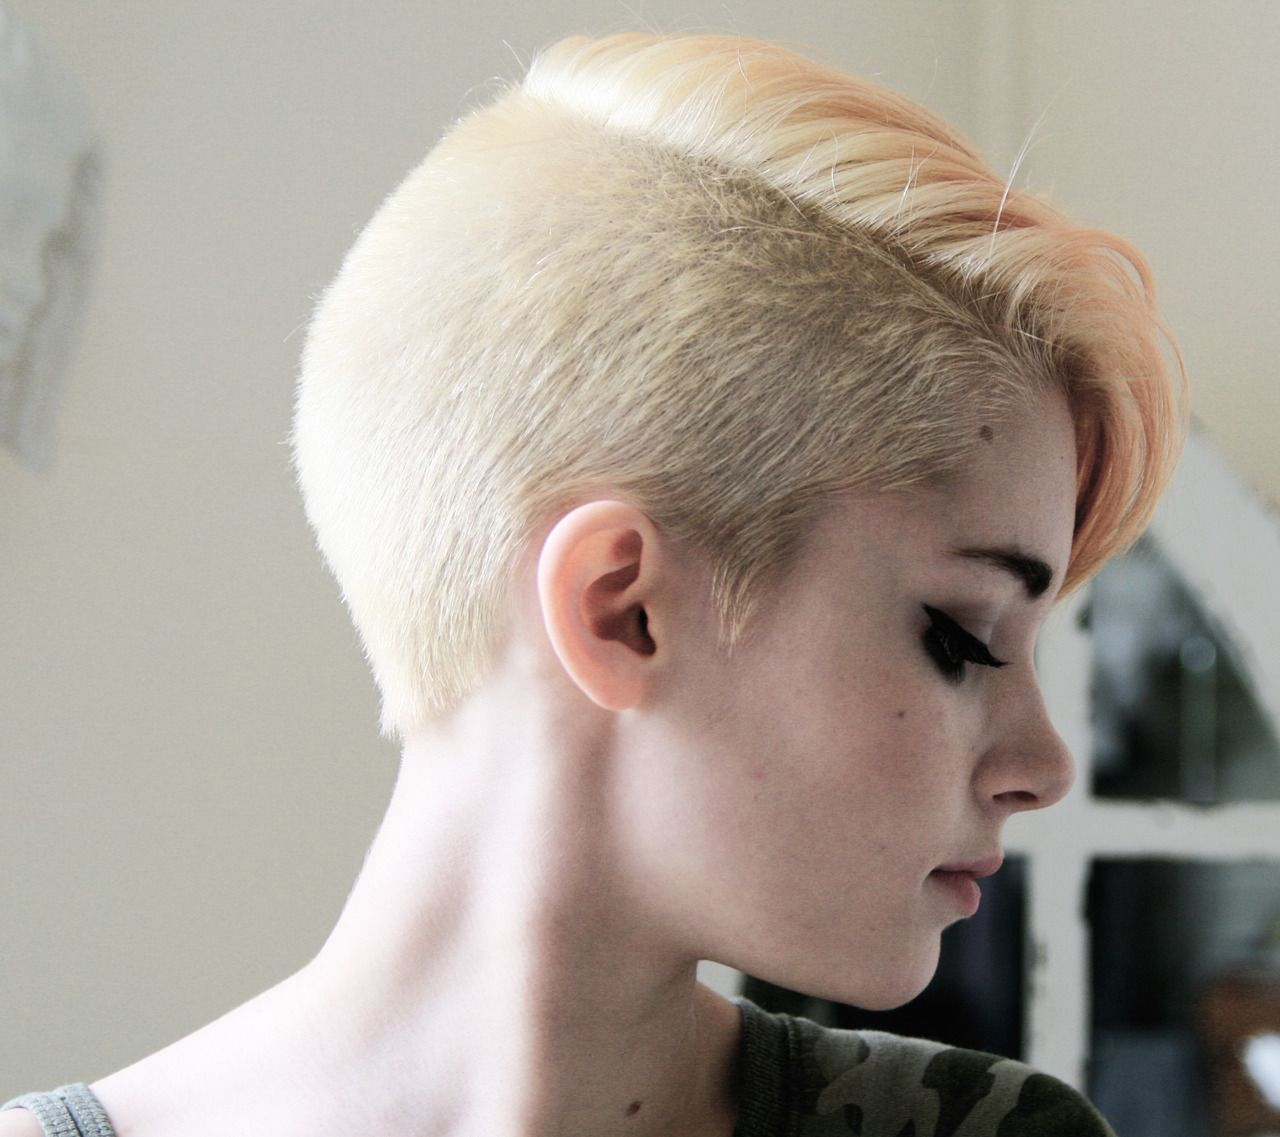 Pin by nopenope on hãīr pinterest shorts haircuts and pixies